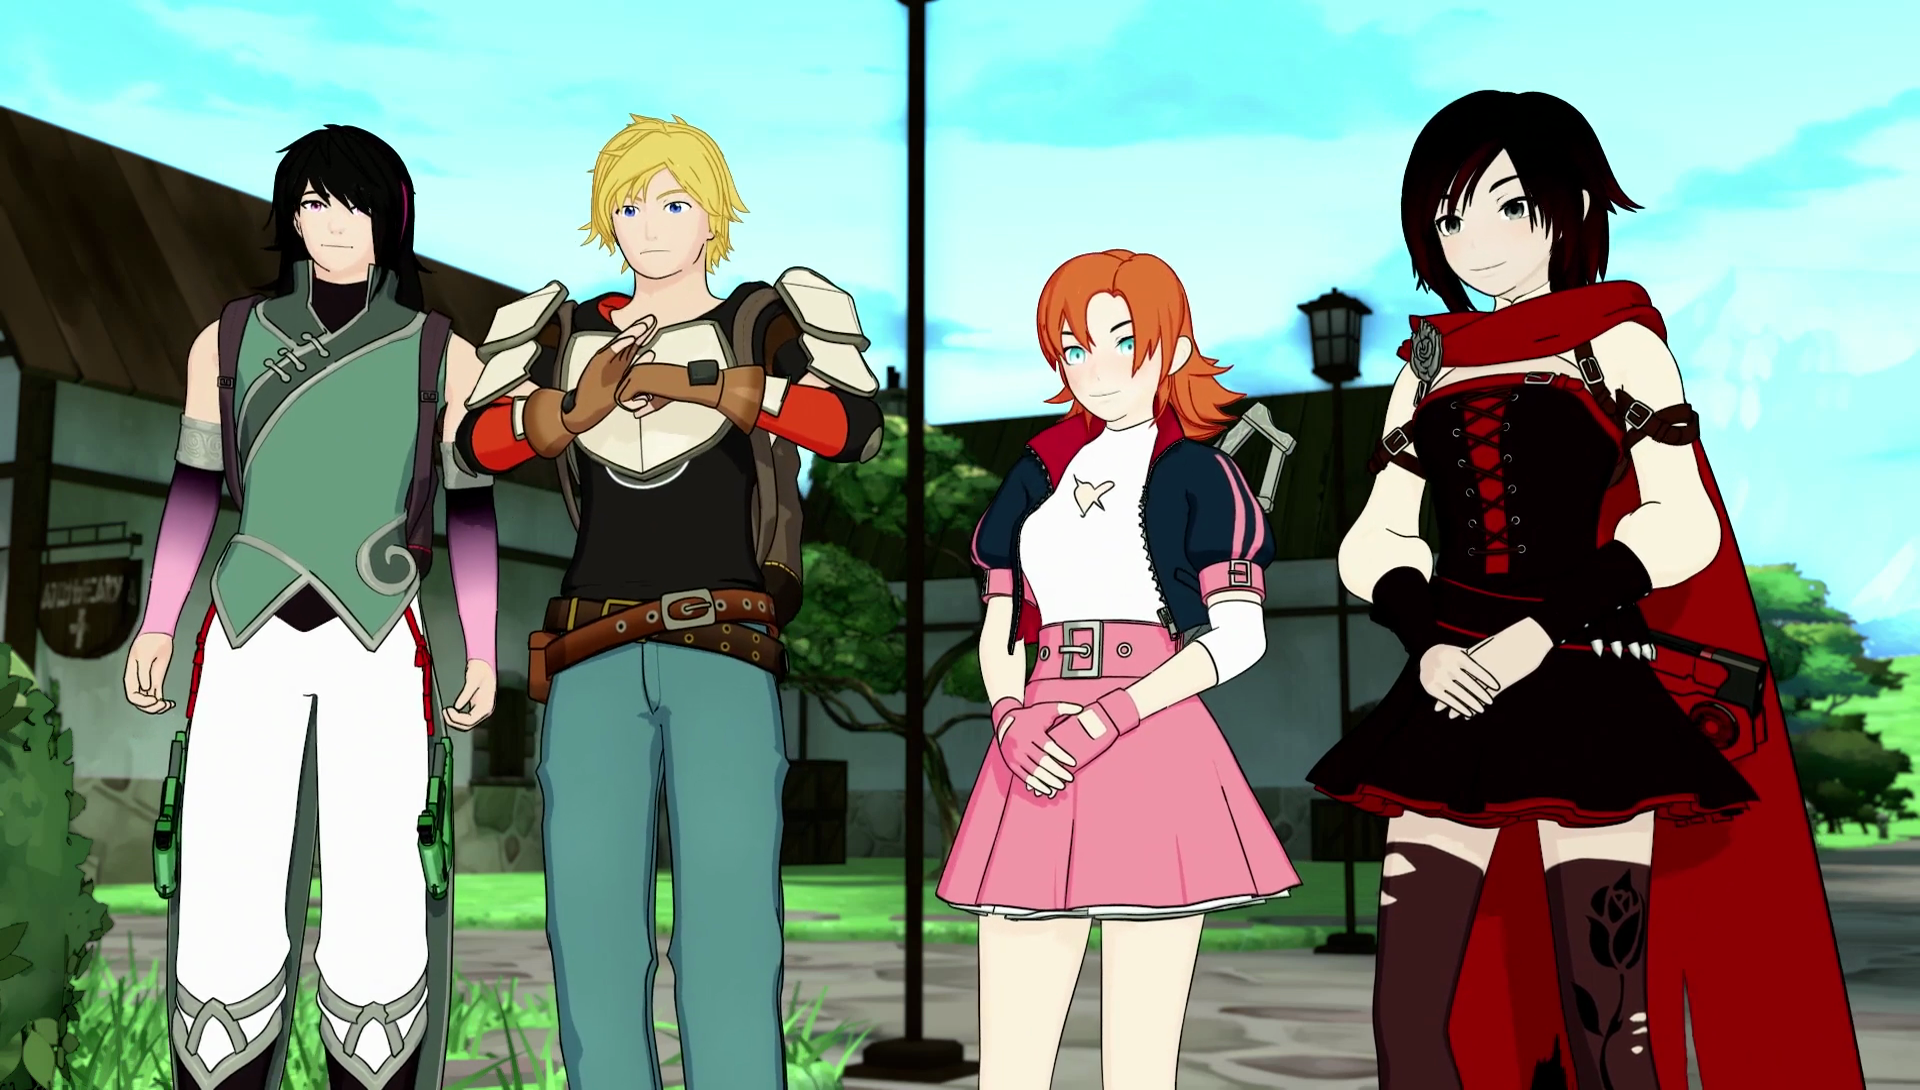 Rwby Team Rwby Rwby Anime – Wonderful Image Gallery